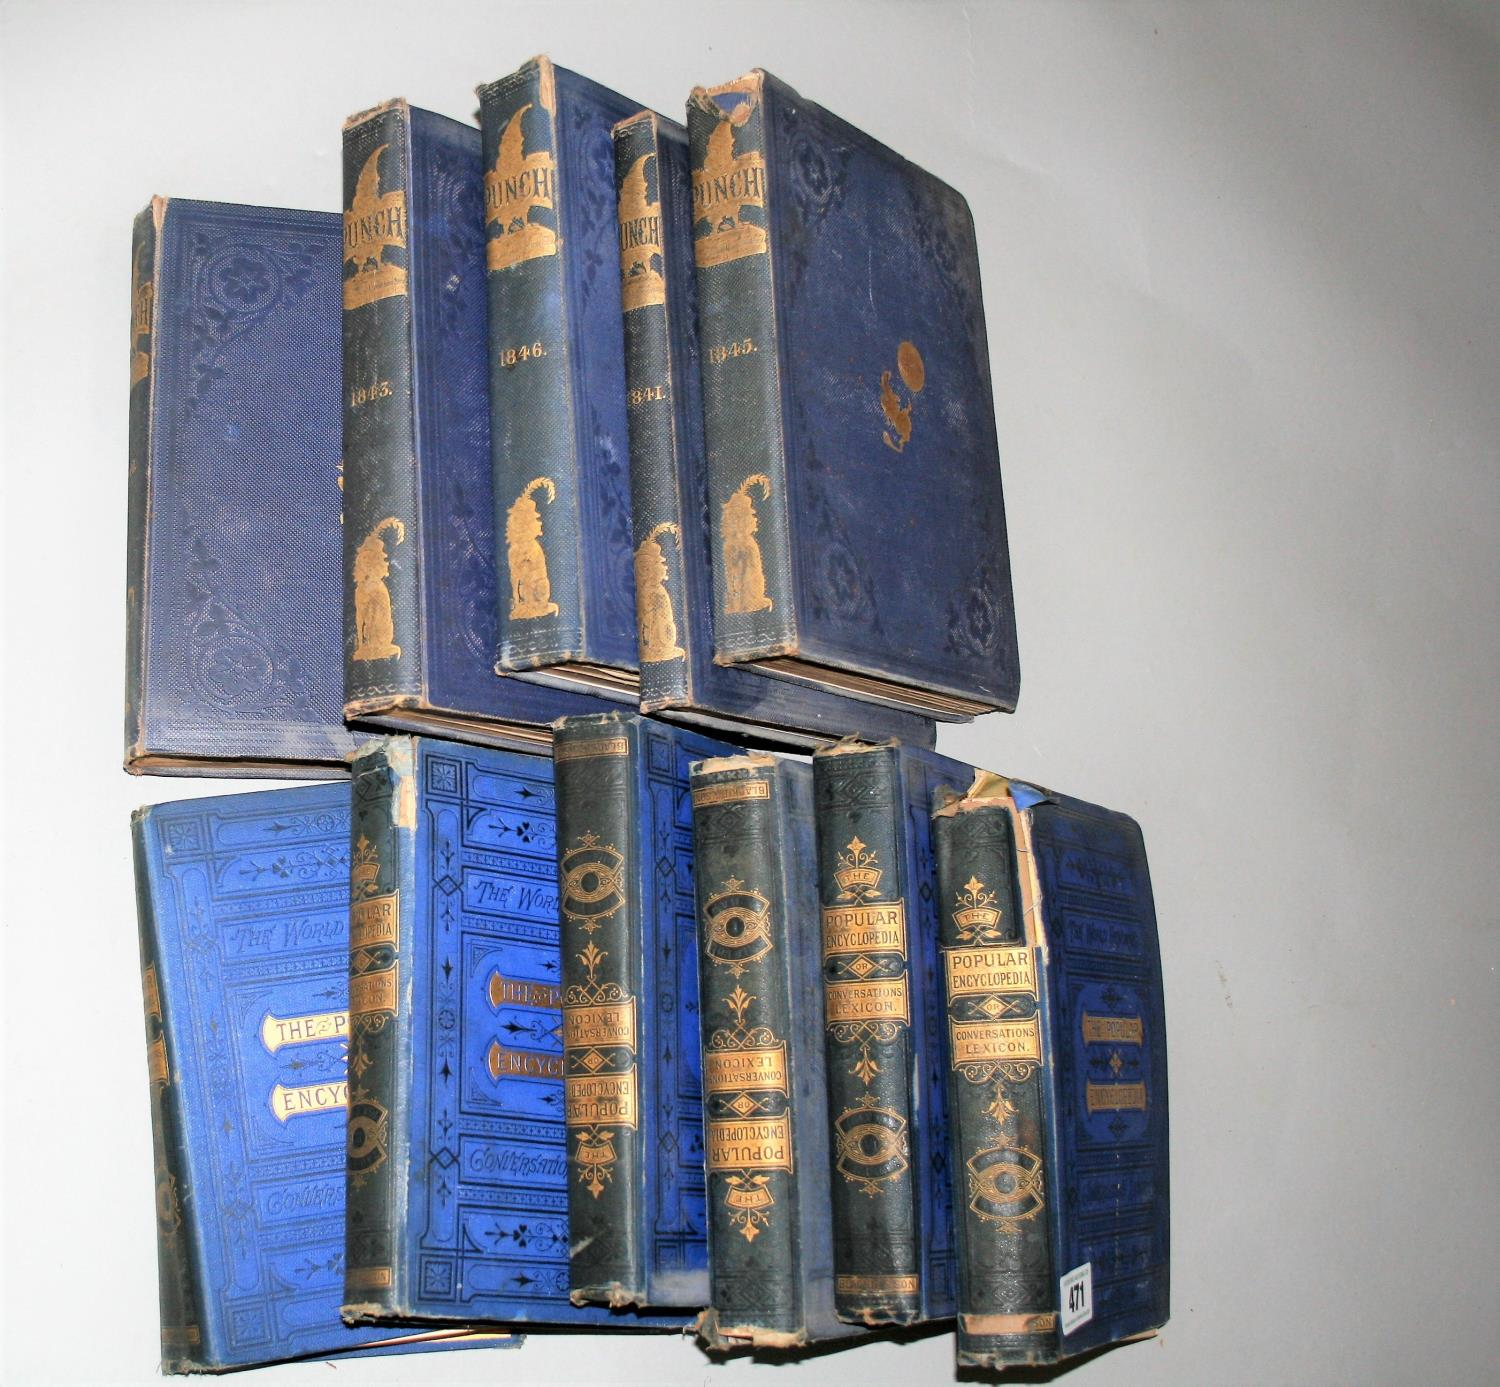 """Six volumes of """"The Popular Encyclopaedia"""" and five books """"Punch"""" 1841, 1842, 1843, 1845, 1846."""